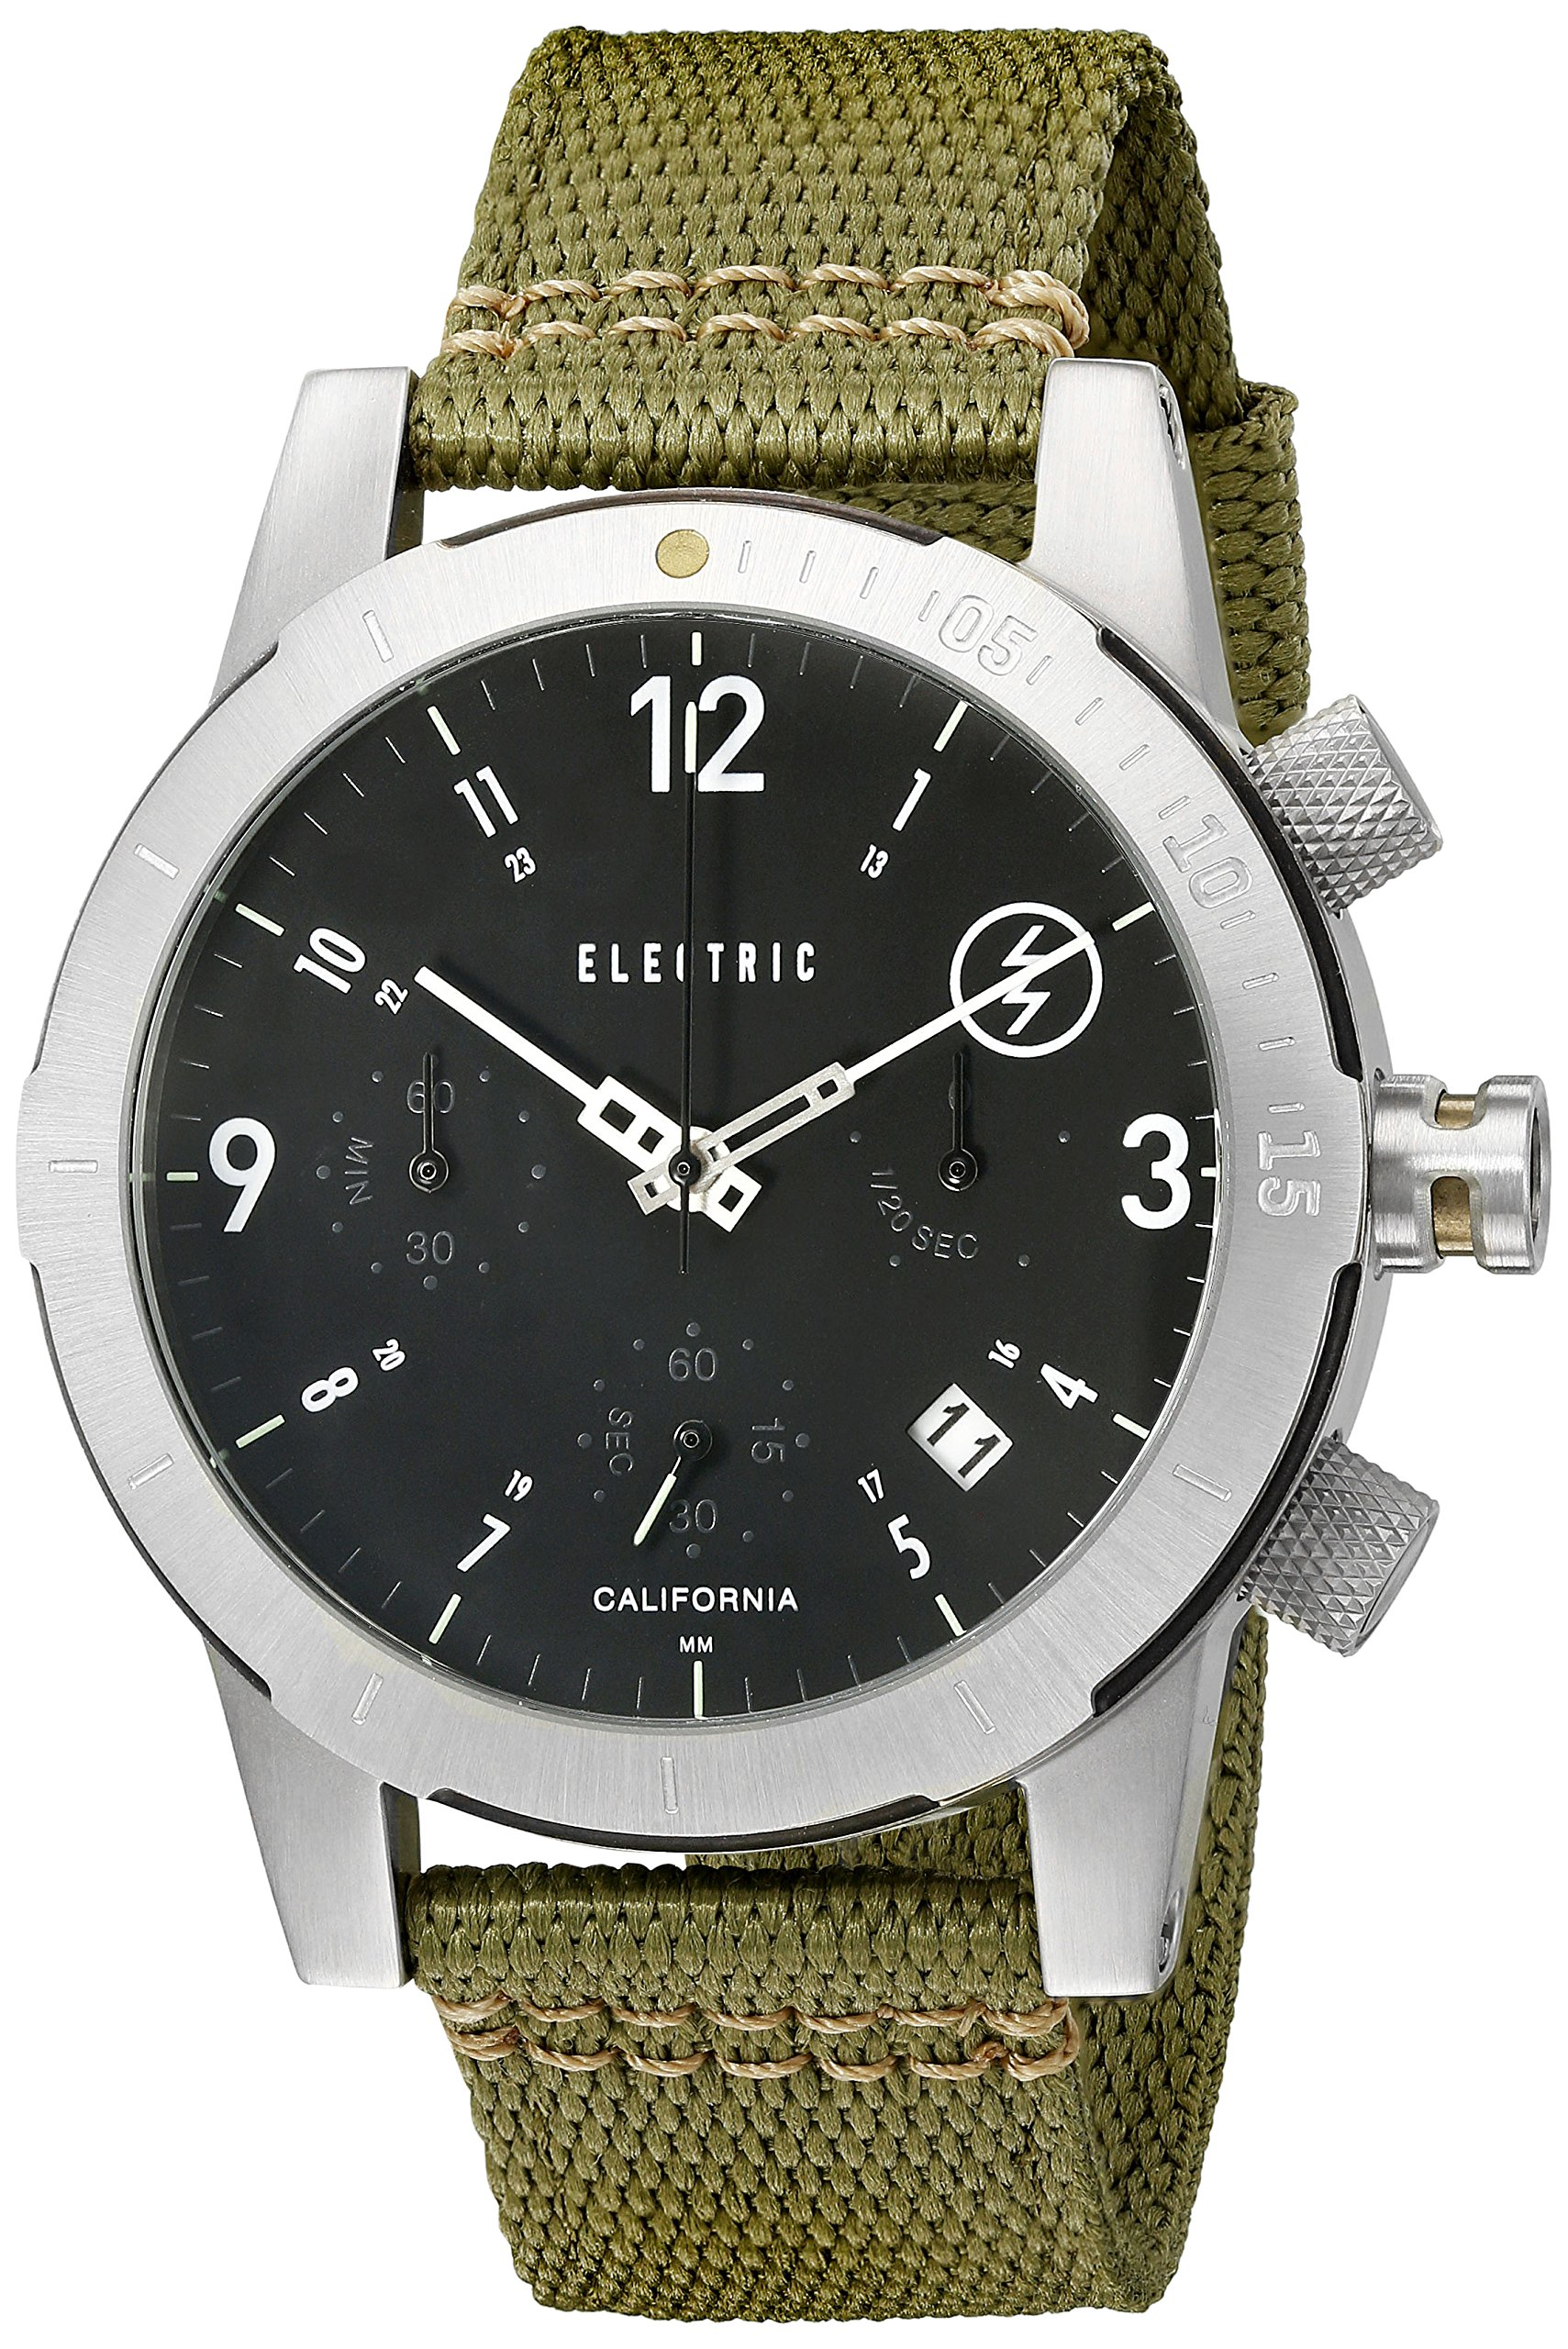 Electric FW02 Nato Watch Black/Olive, One Size by Electric